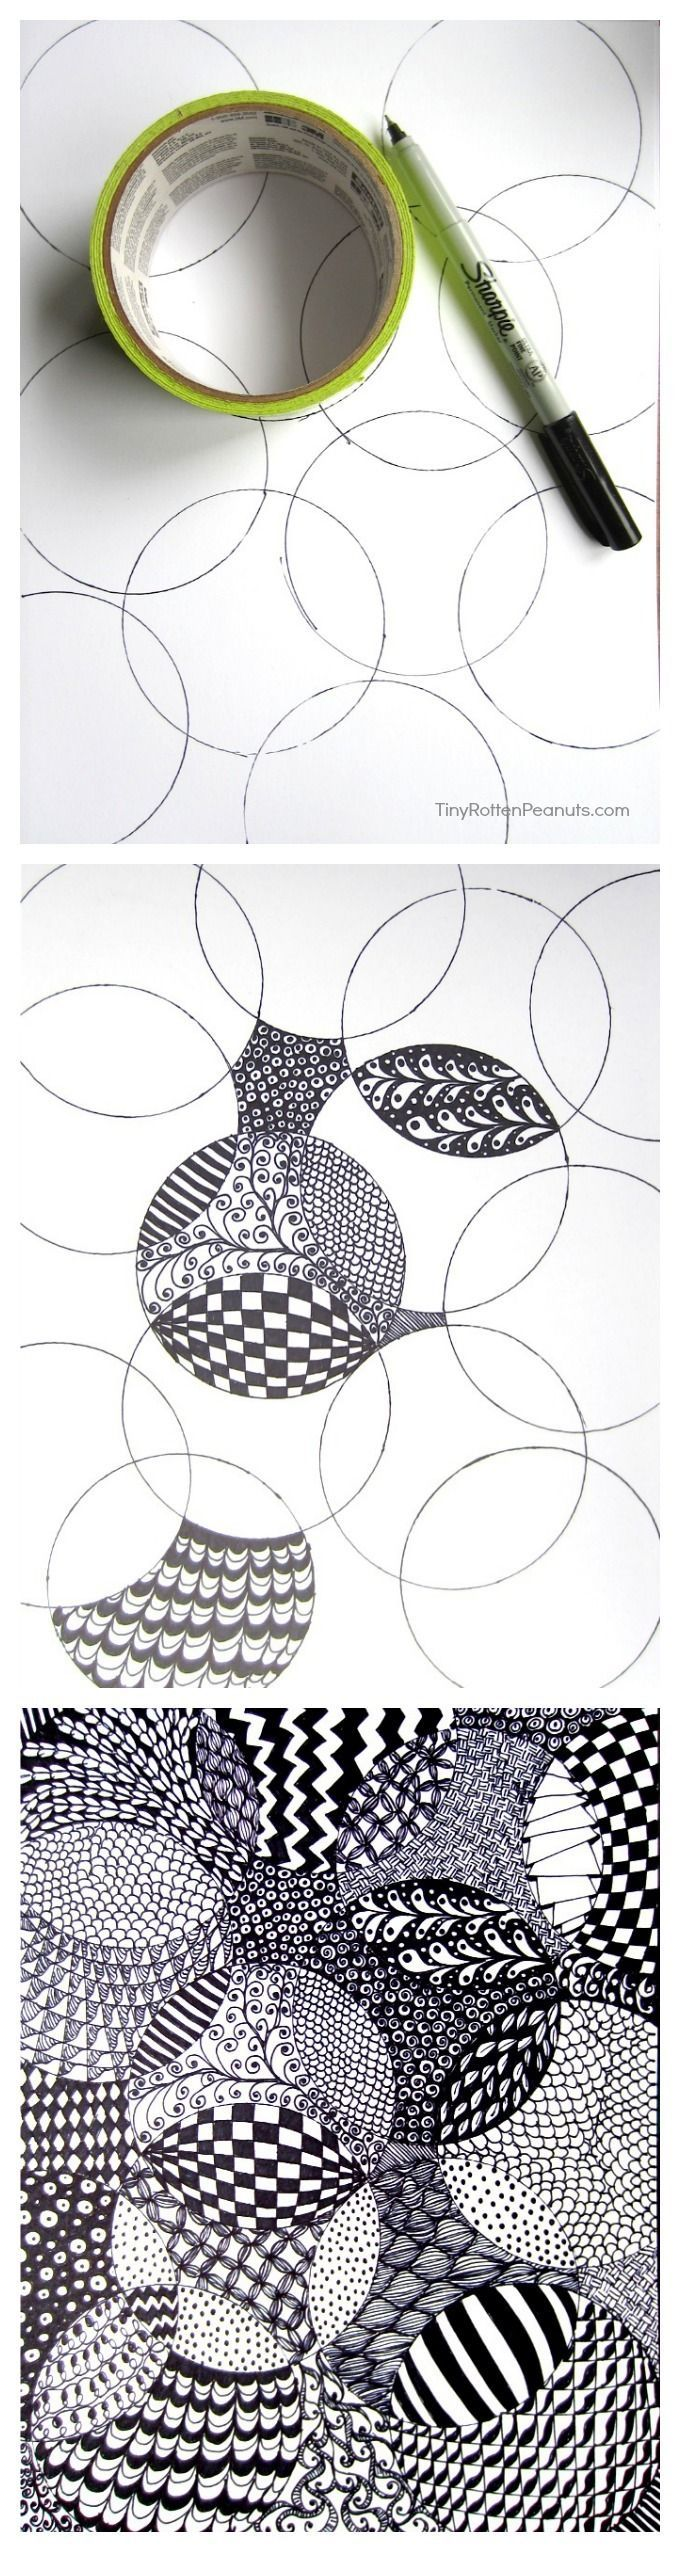 Totally Easy Zentangle project: (I bet you'll love doing this) http://craftwhack.com/zentangle/